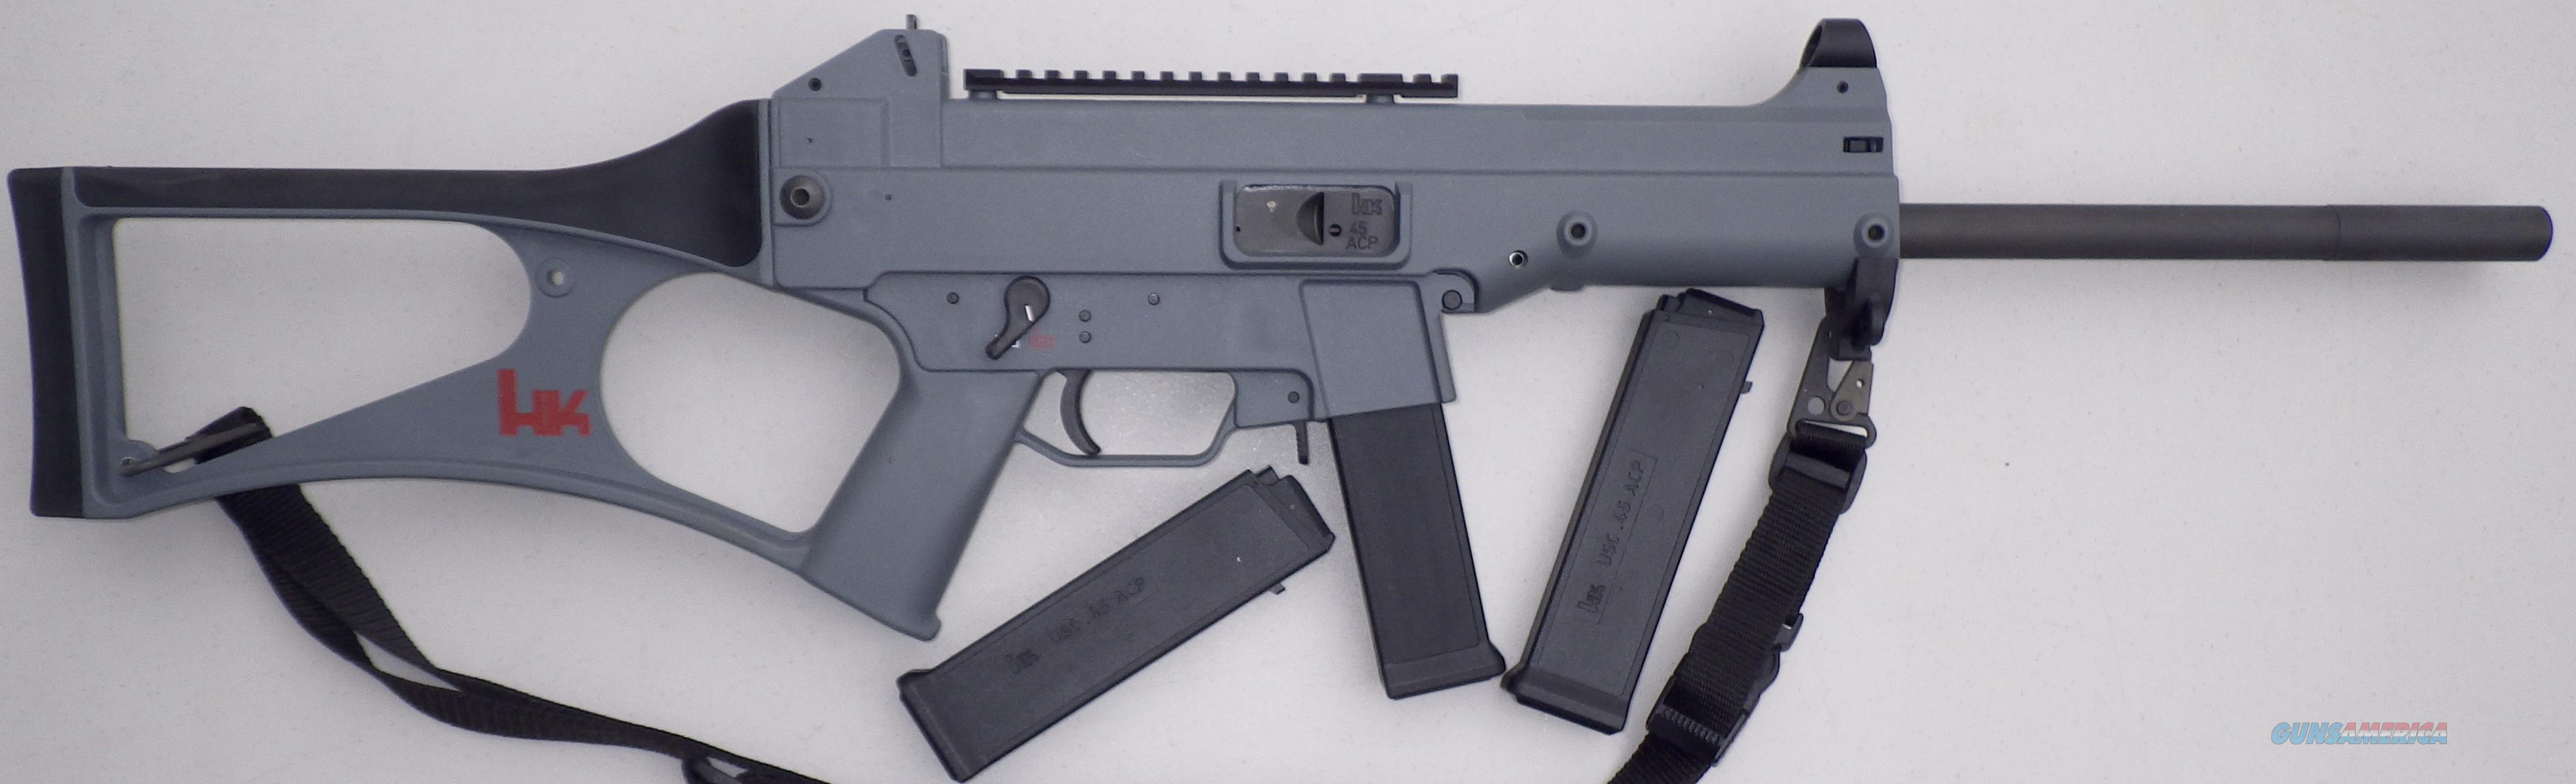 H&K USC .45 ACP, 16-inch barrel, three 10-round mags., gray, unfired  Guns > Rifles > Heckler & Koch Rifles > Tactical